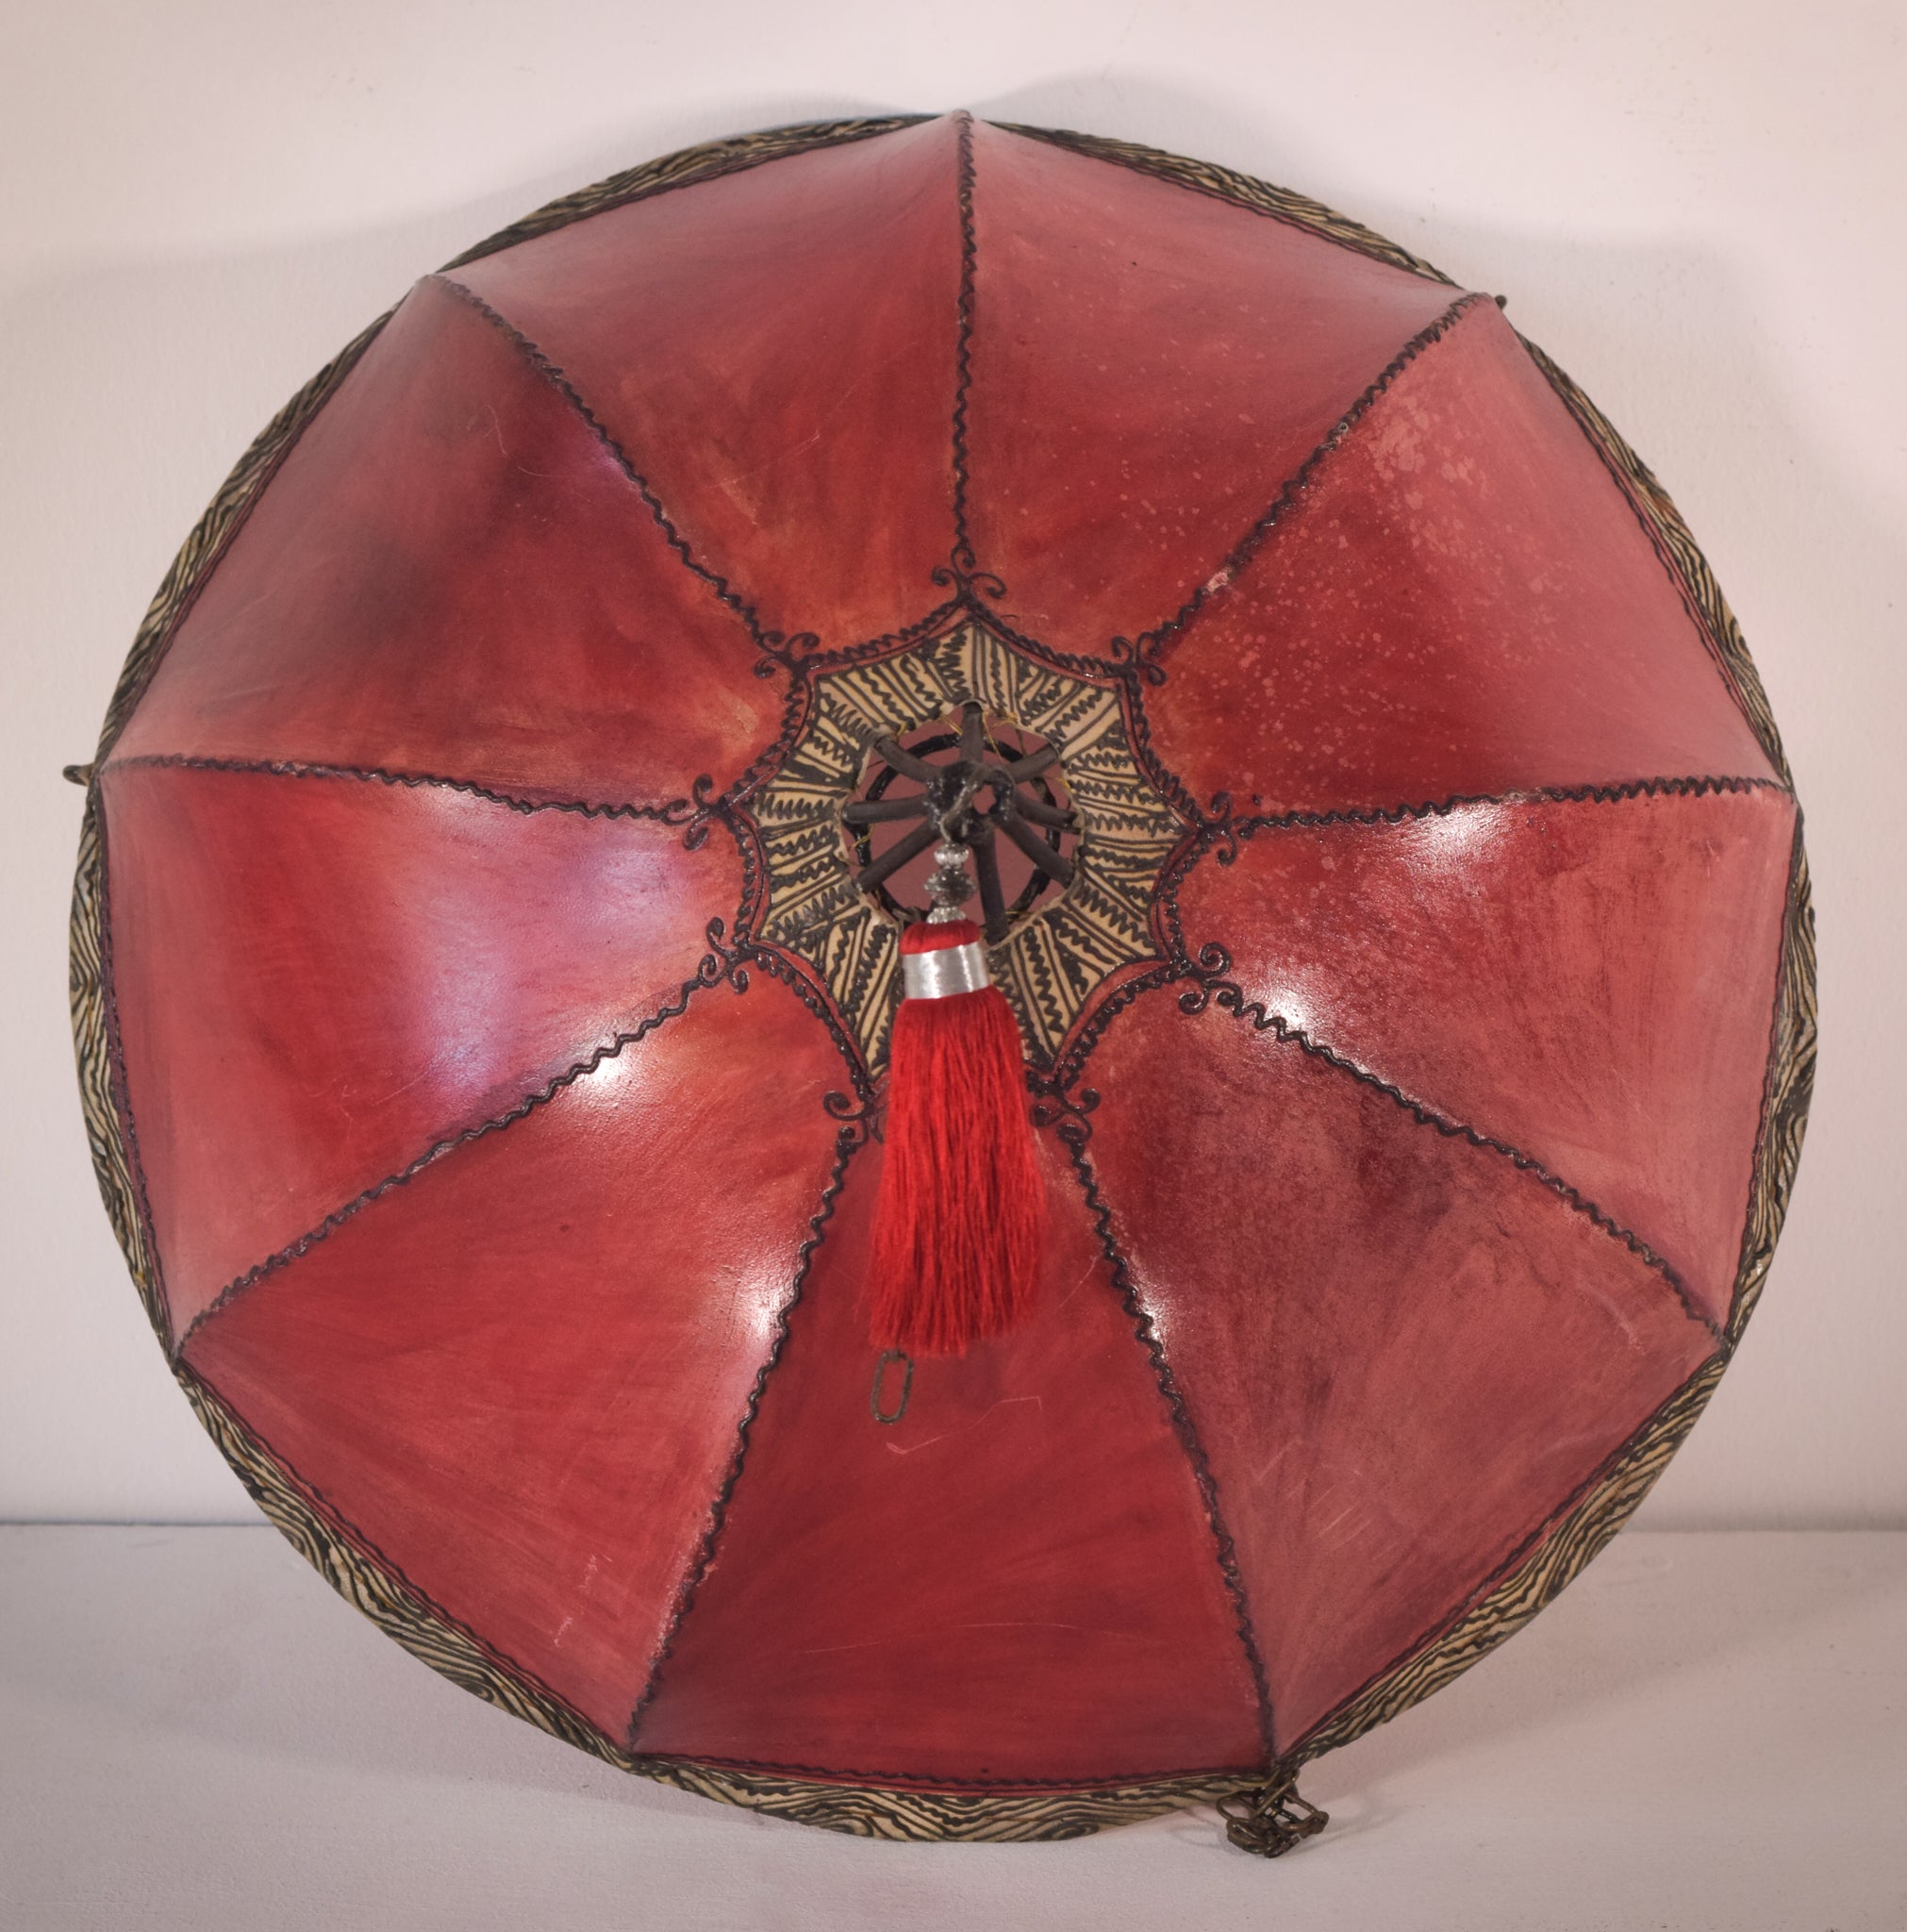 Red Hide Skin Stained Decorated Lamp Shade With Metal Frame